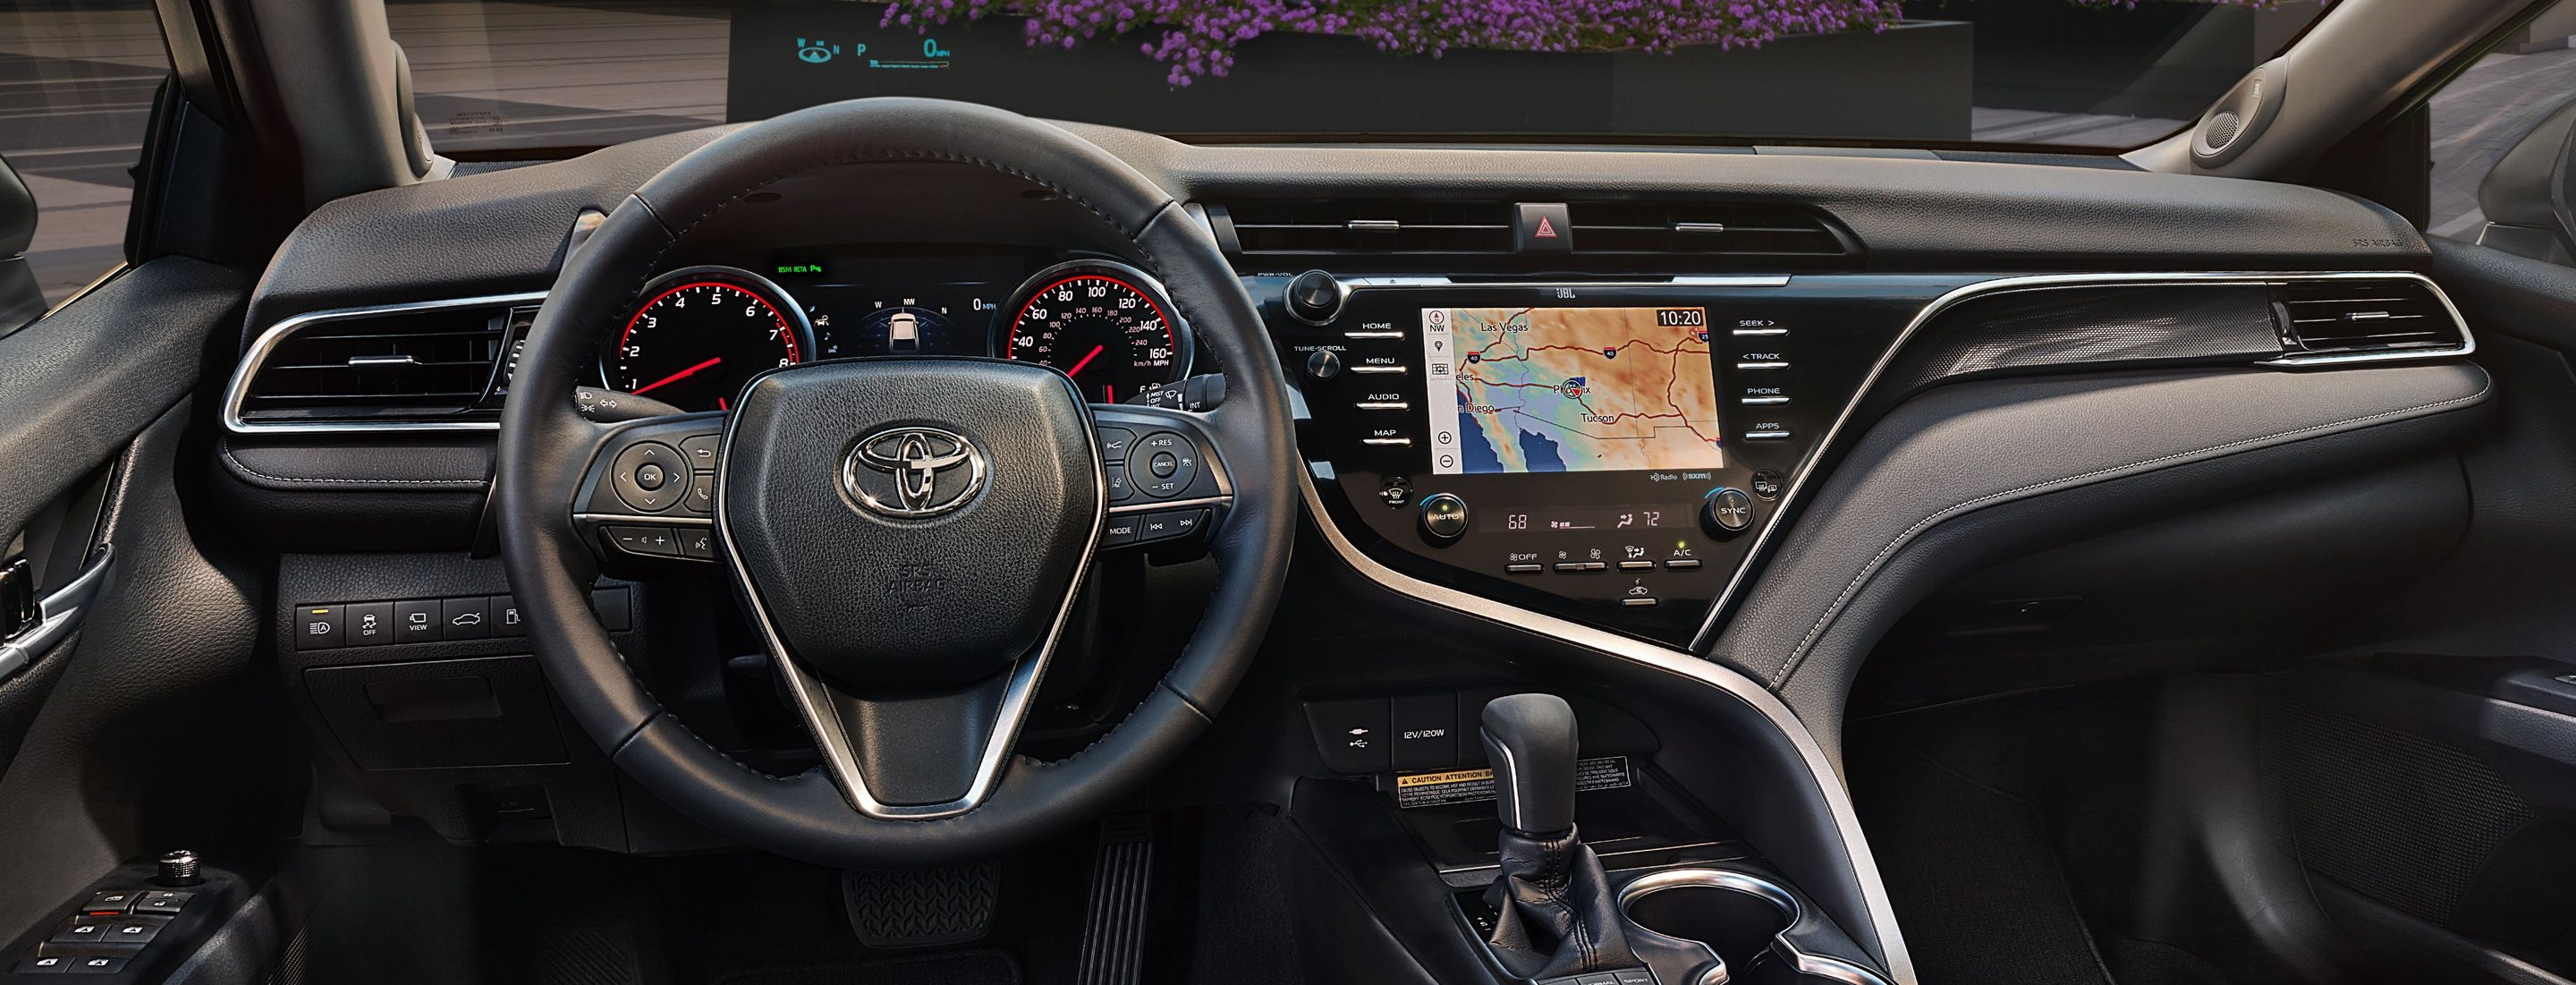 Advanced Interior of the 2019 Camry